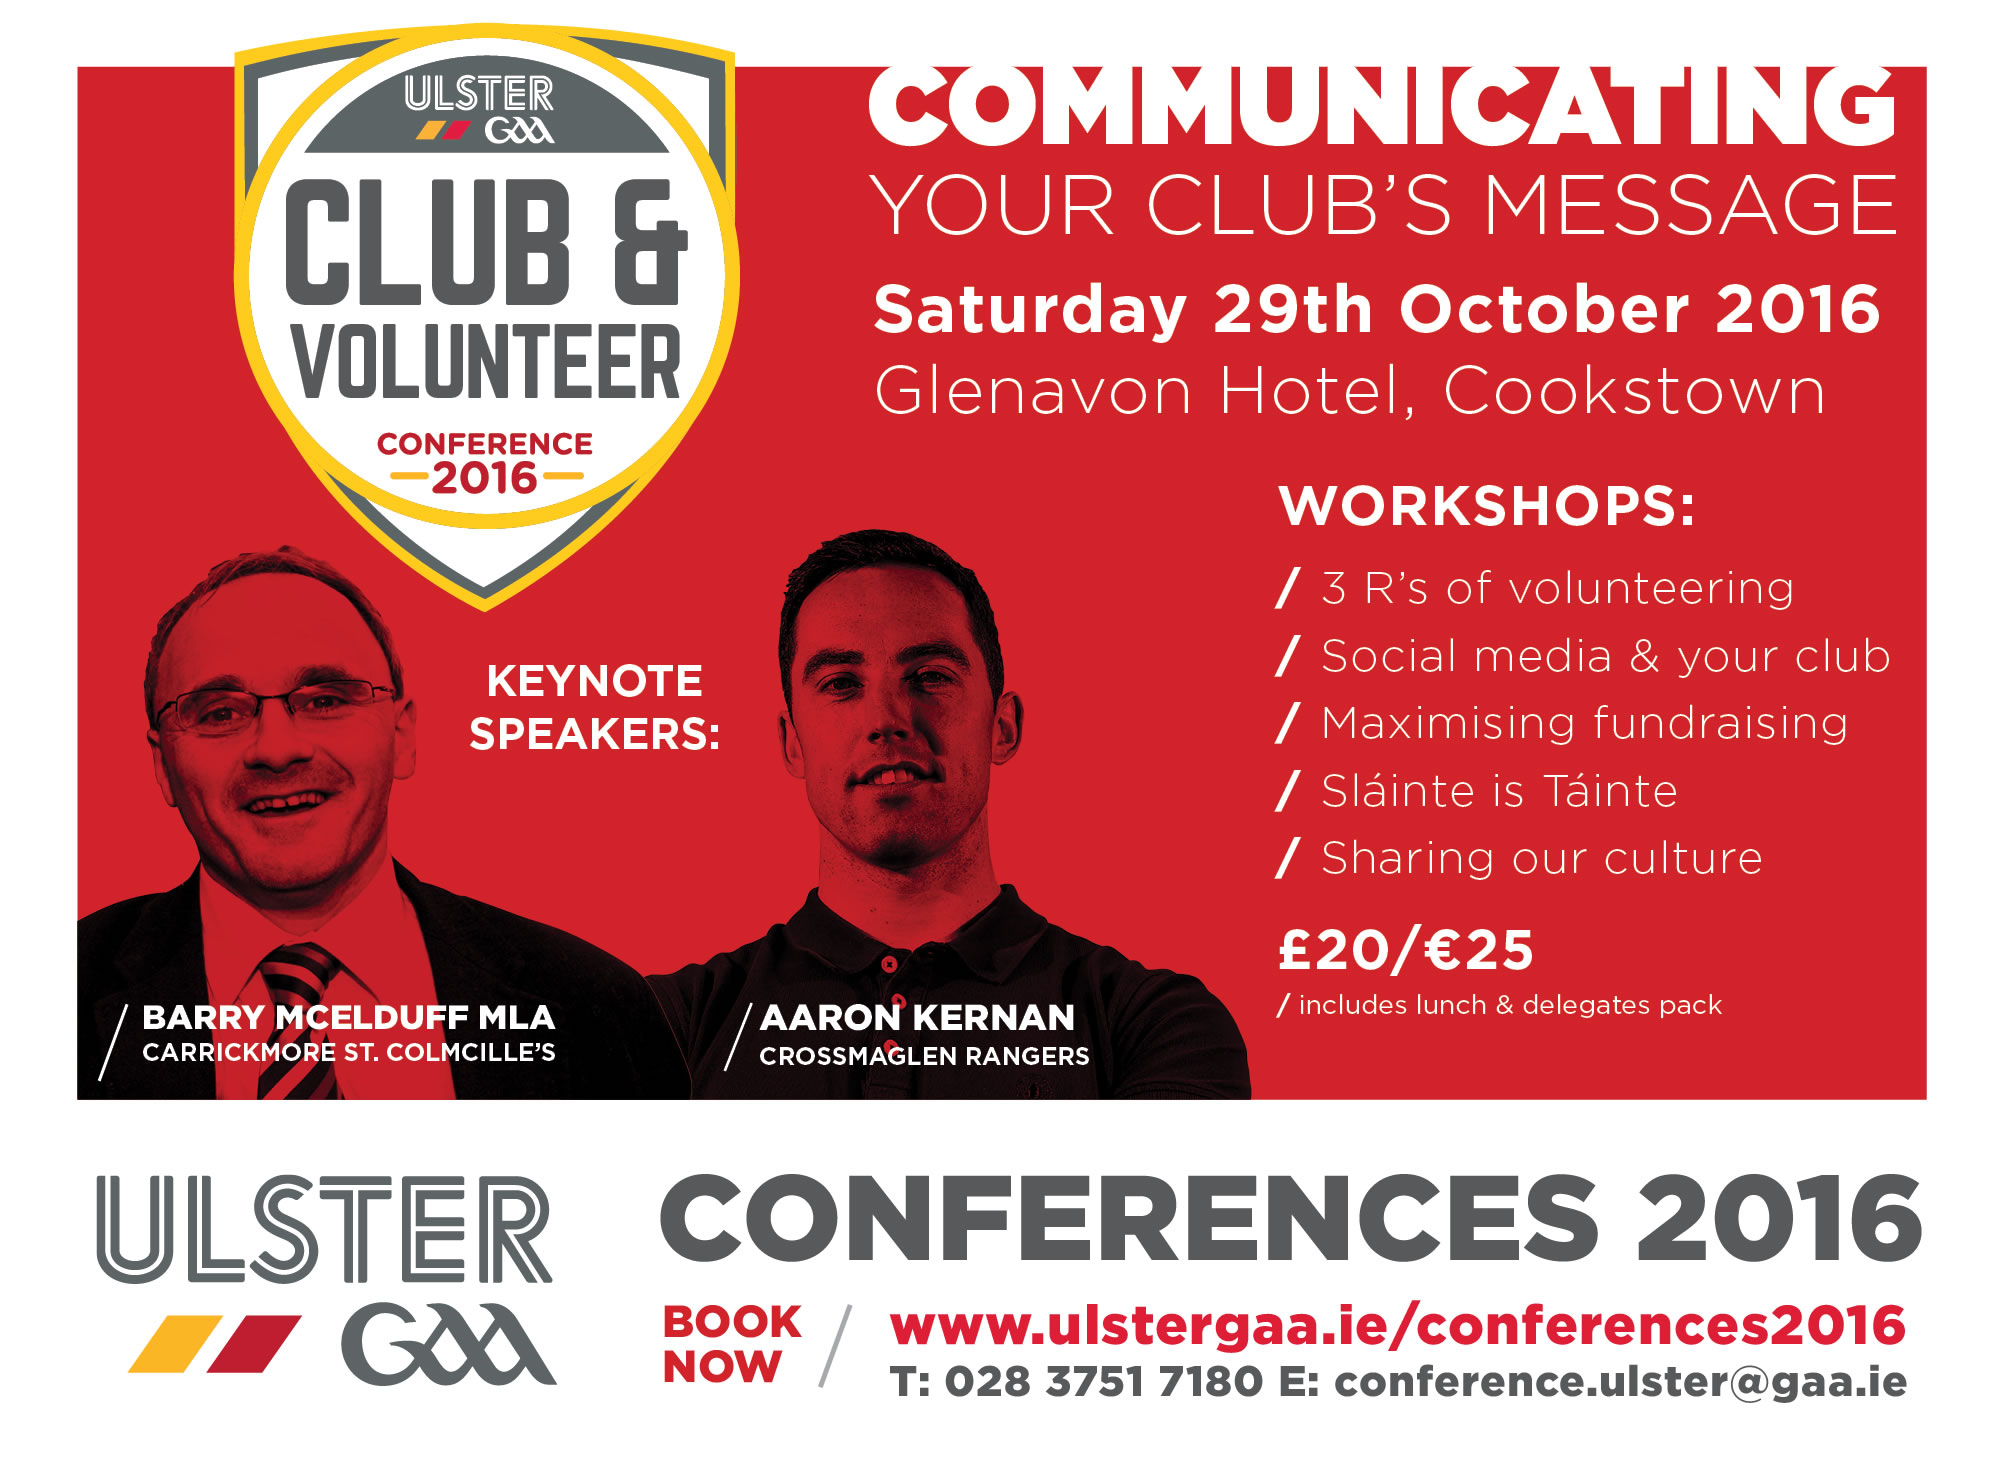 Ulster GAA's Club & Volunteer Conference 2016